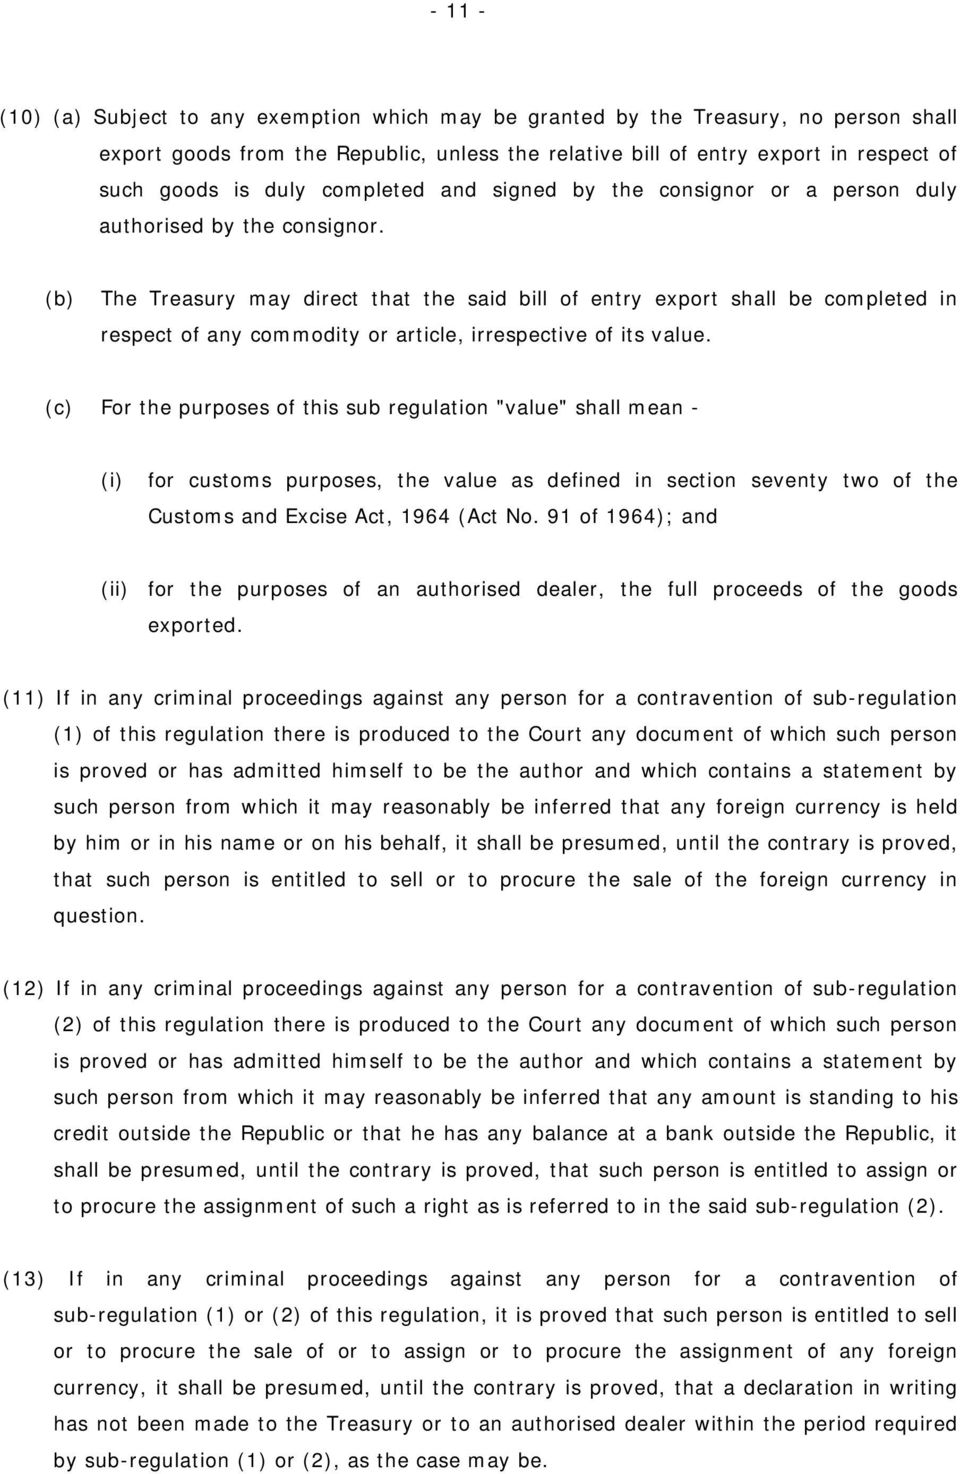 (b) The Treasury may direct that the said bill of entry export shall be completed in respect of any commodity or article, irrespective of its value.